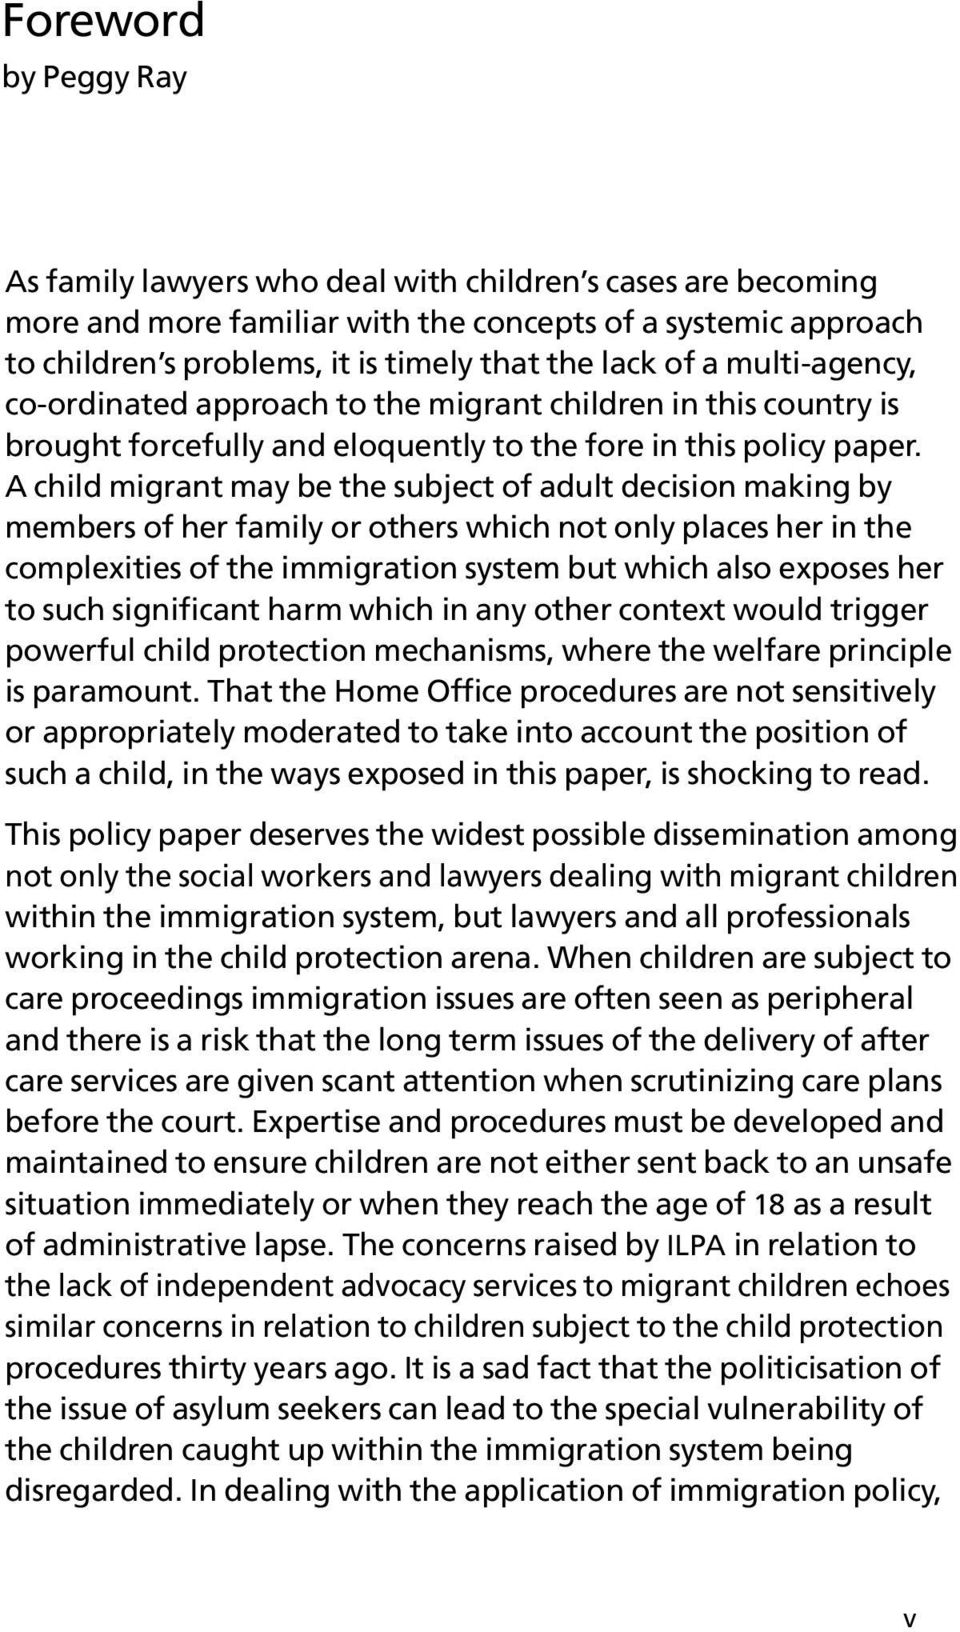 A child migrant may be the subject of adult decision making by members of her family or others which not only places her in the complexities of the immigration system but which also exposes her to